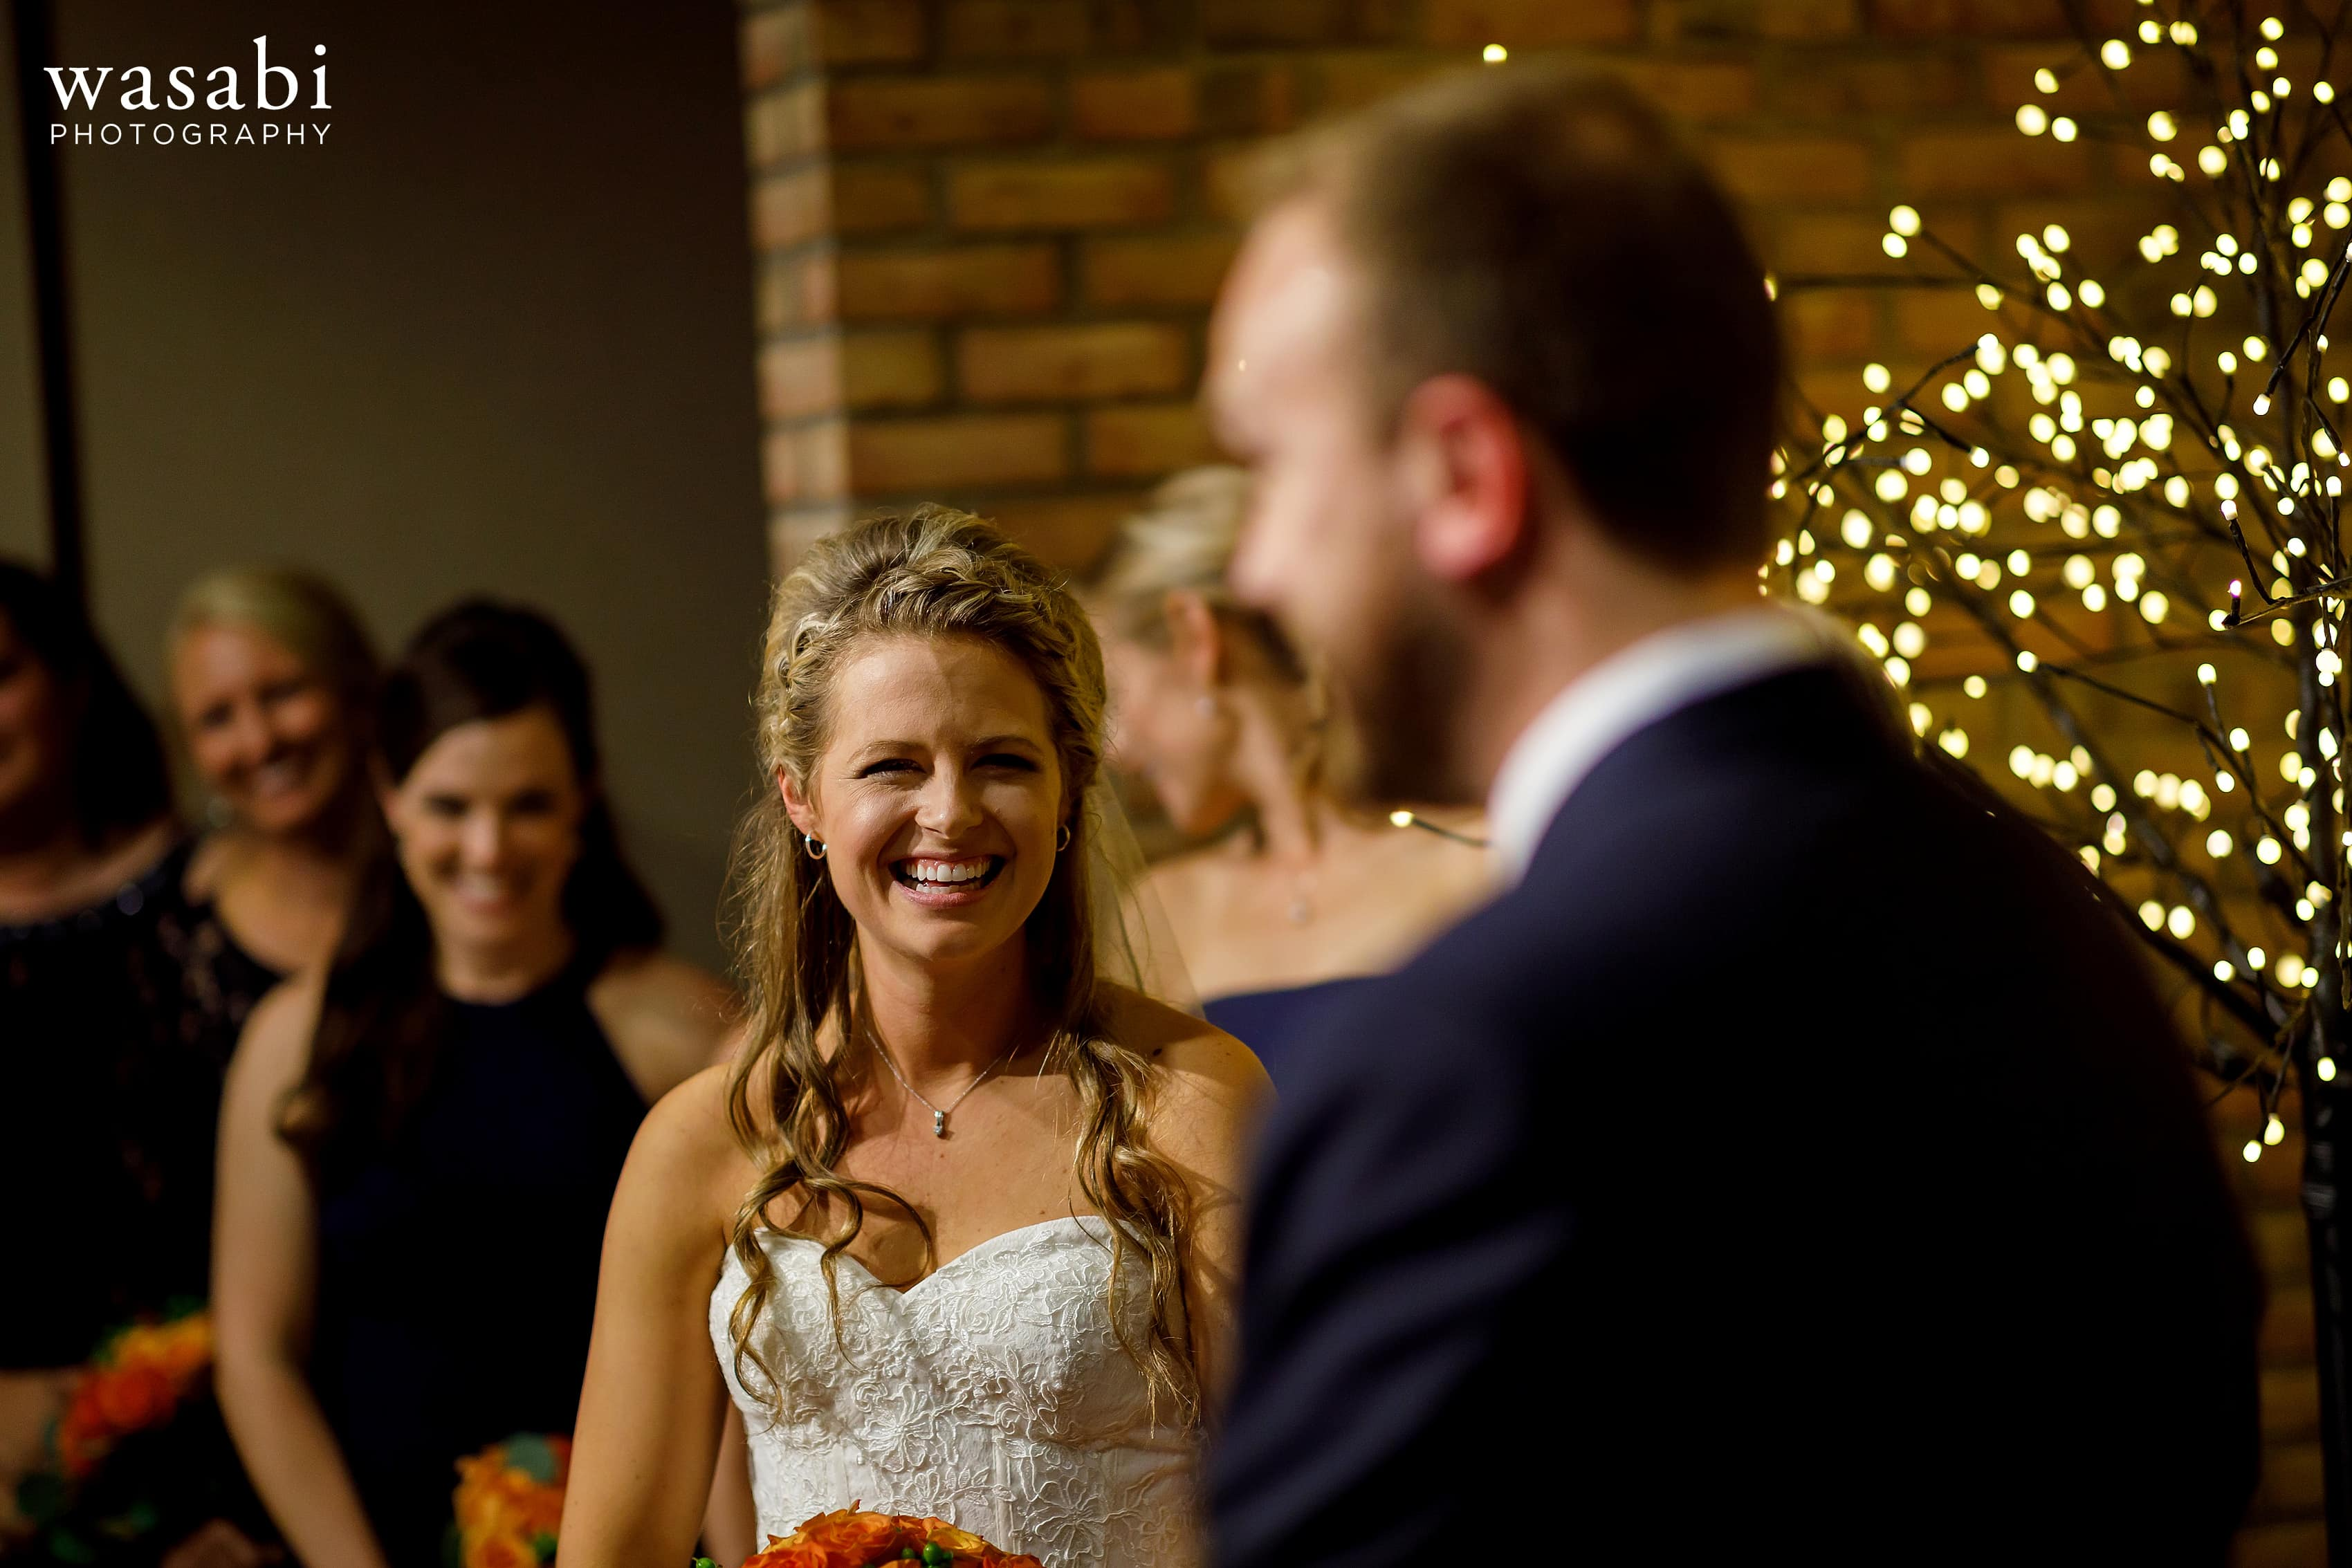 Bride smiles at groom during their wedding at Eberhard Center in downtown Grand Rapids